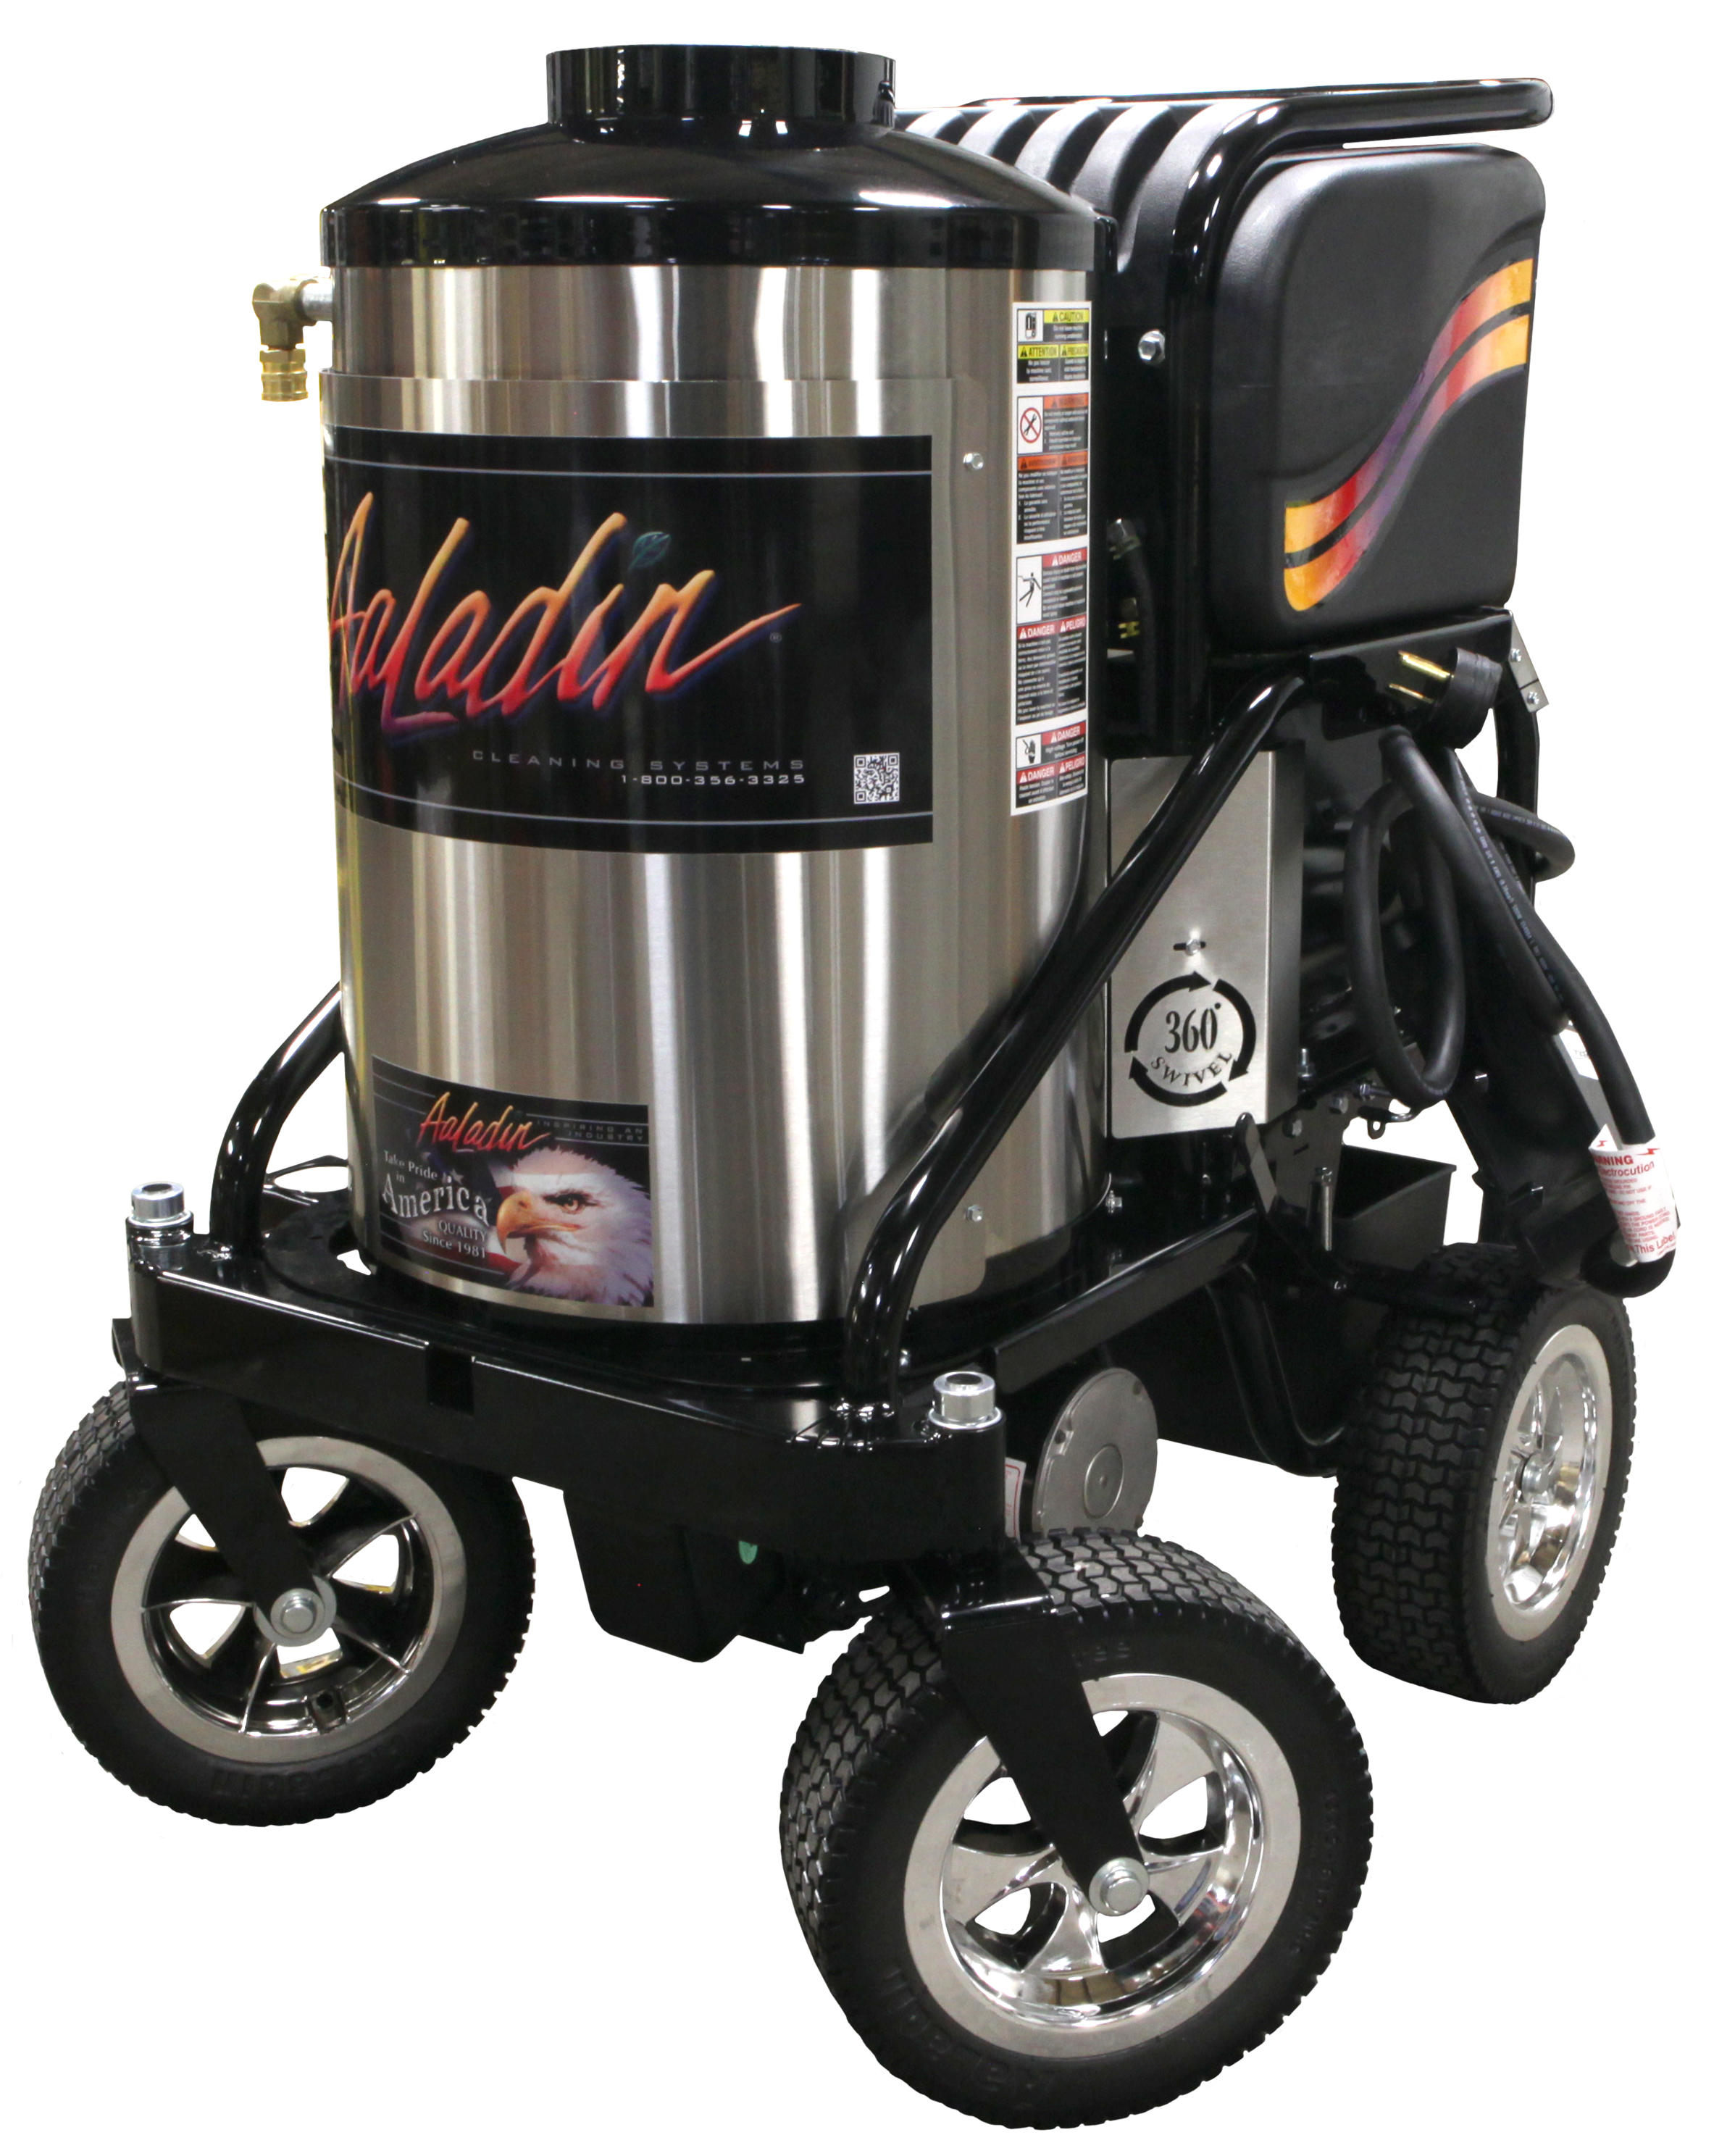 Aaladin Central Total Pressure Washer Supply image 6